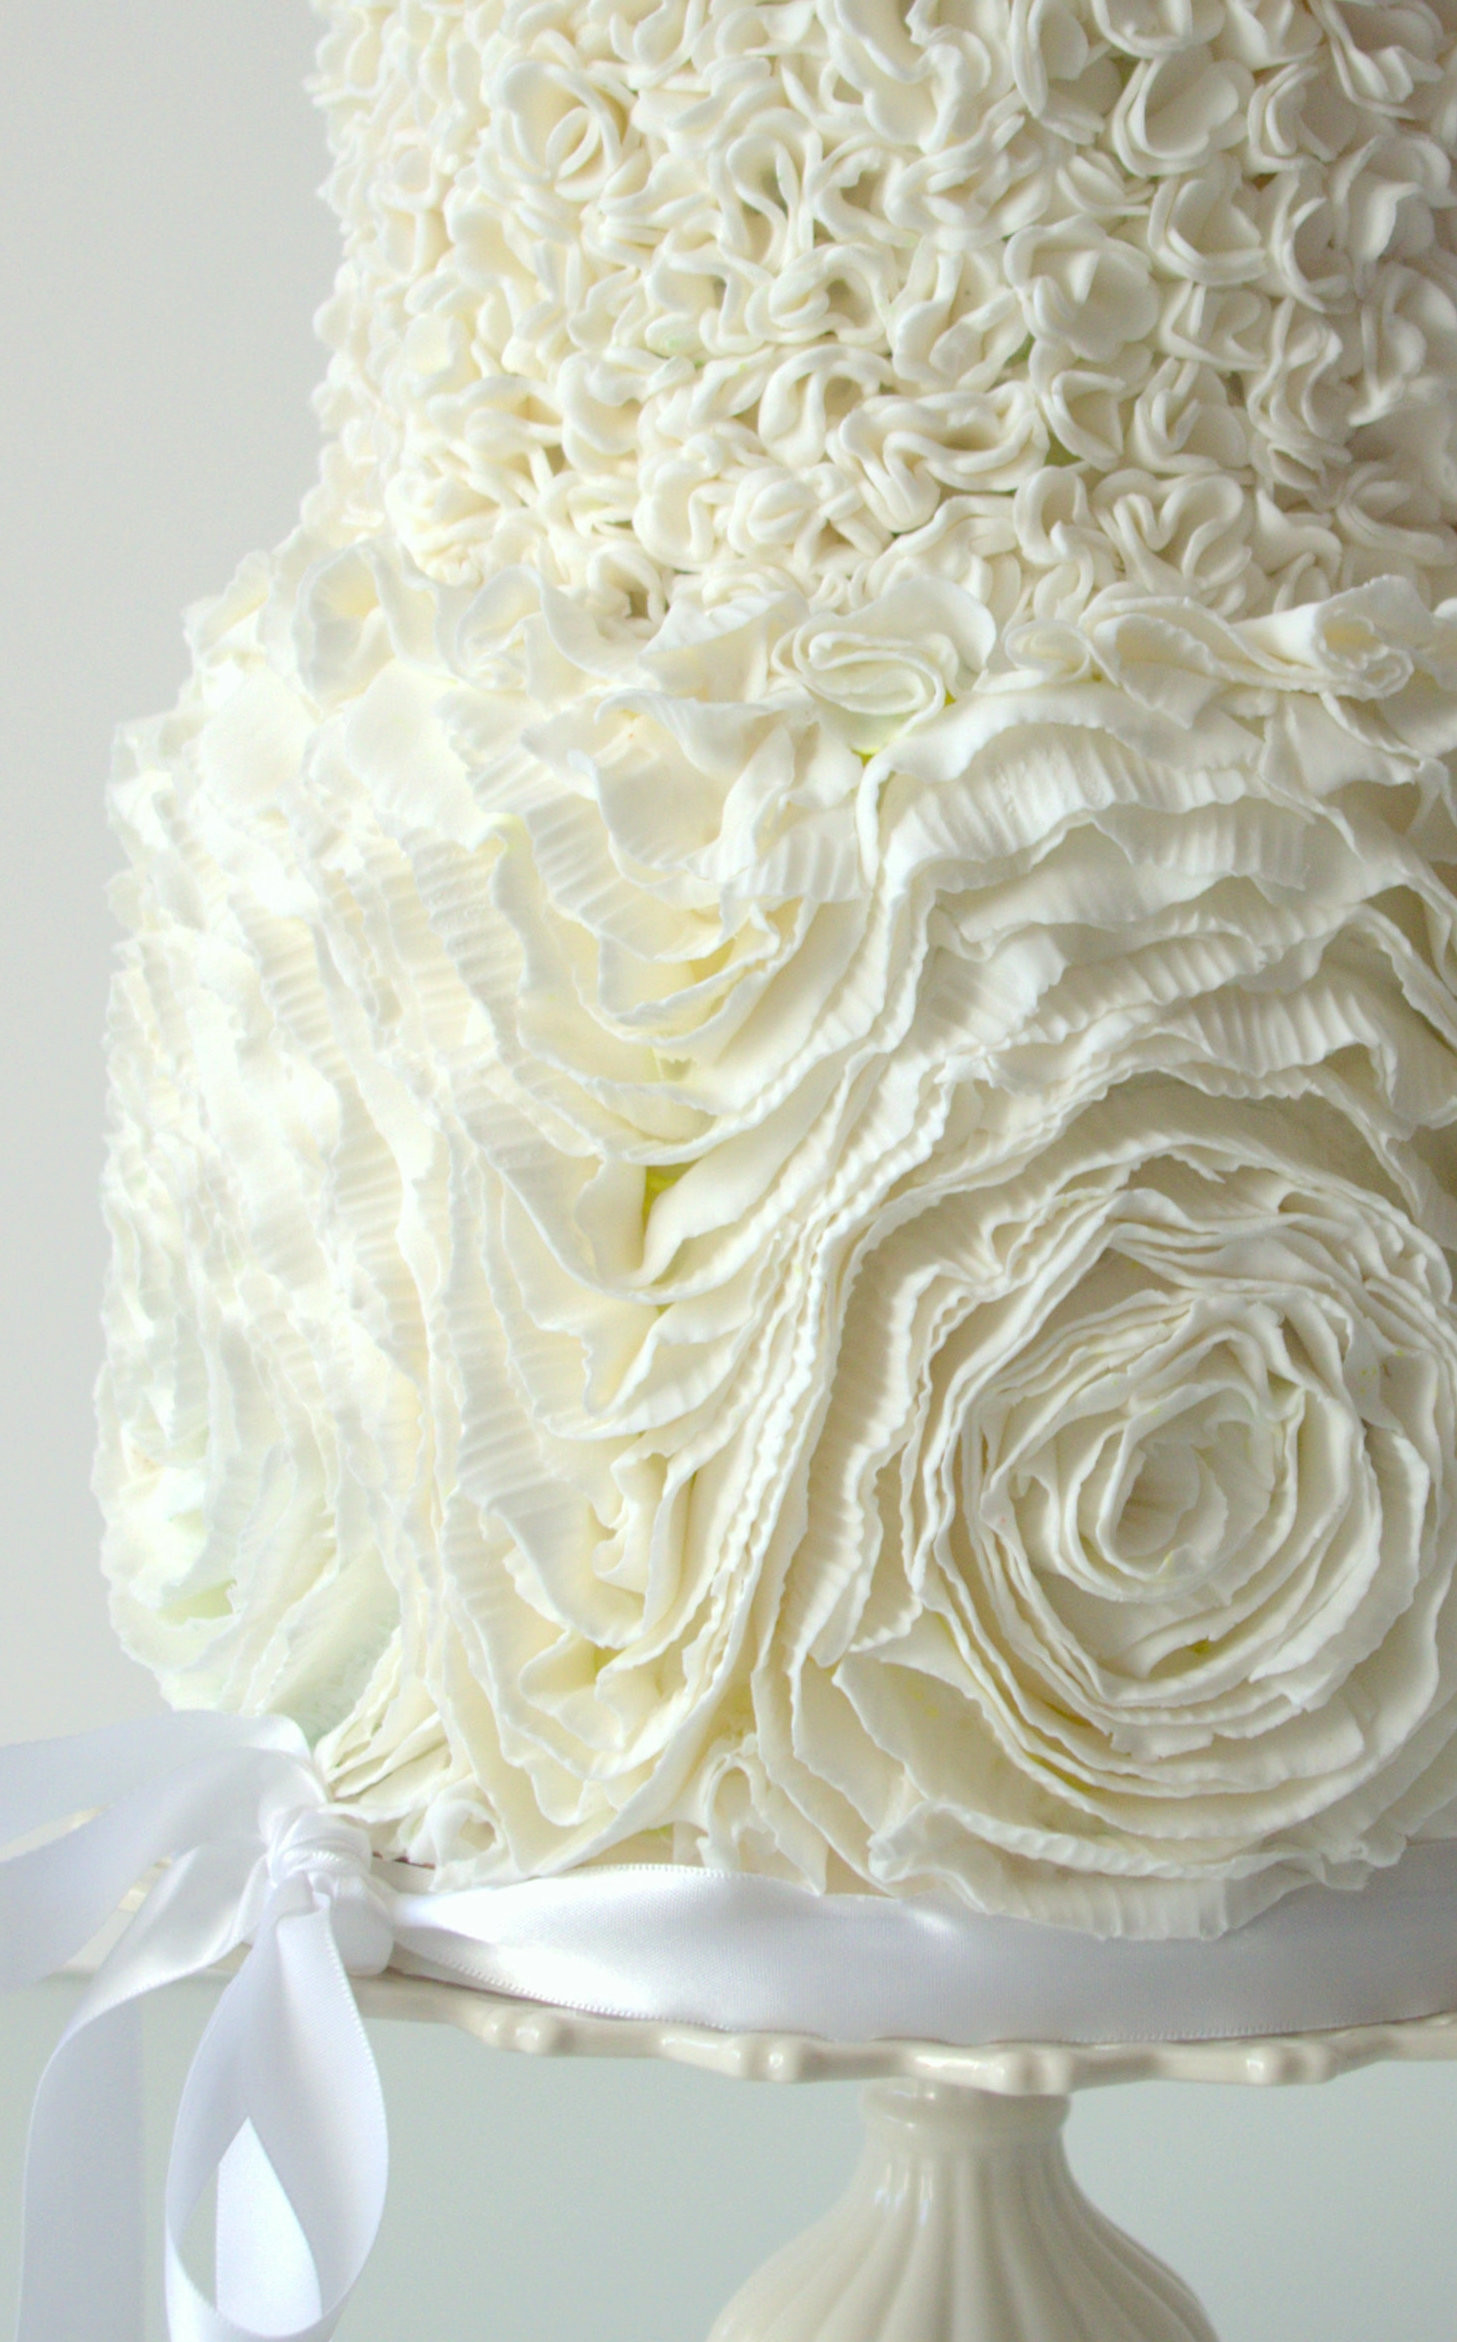 Ruffled Wedding Cakes  Ruffle Rose And Pompom Wedding Cake CakeCentral